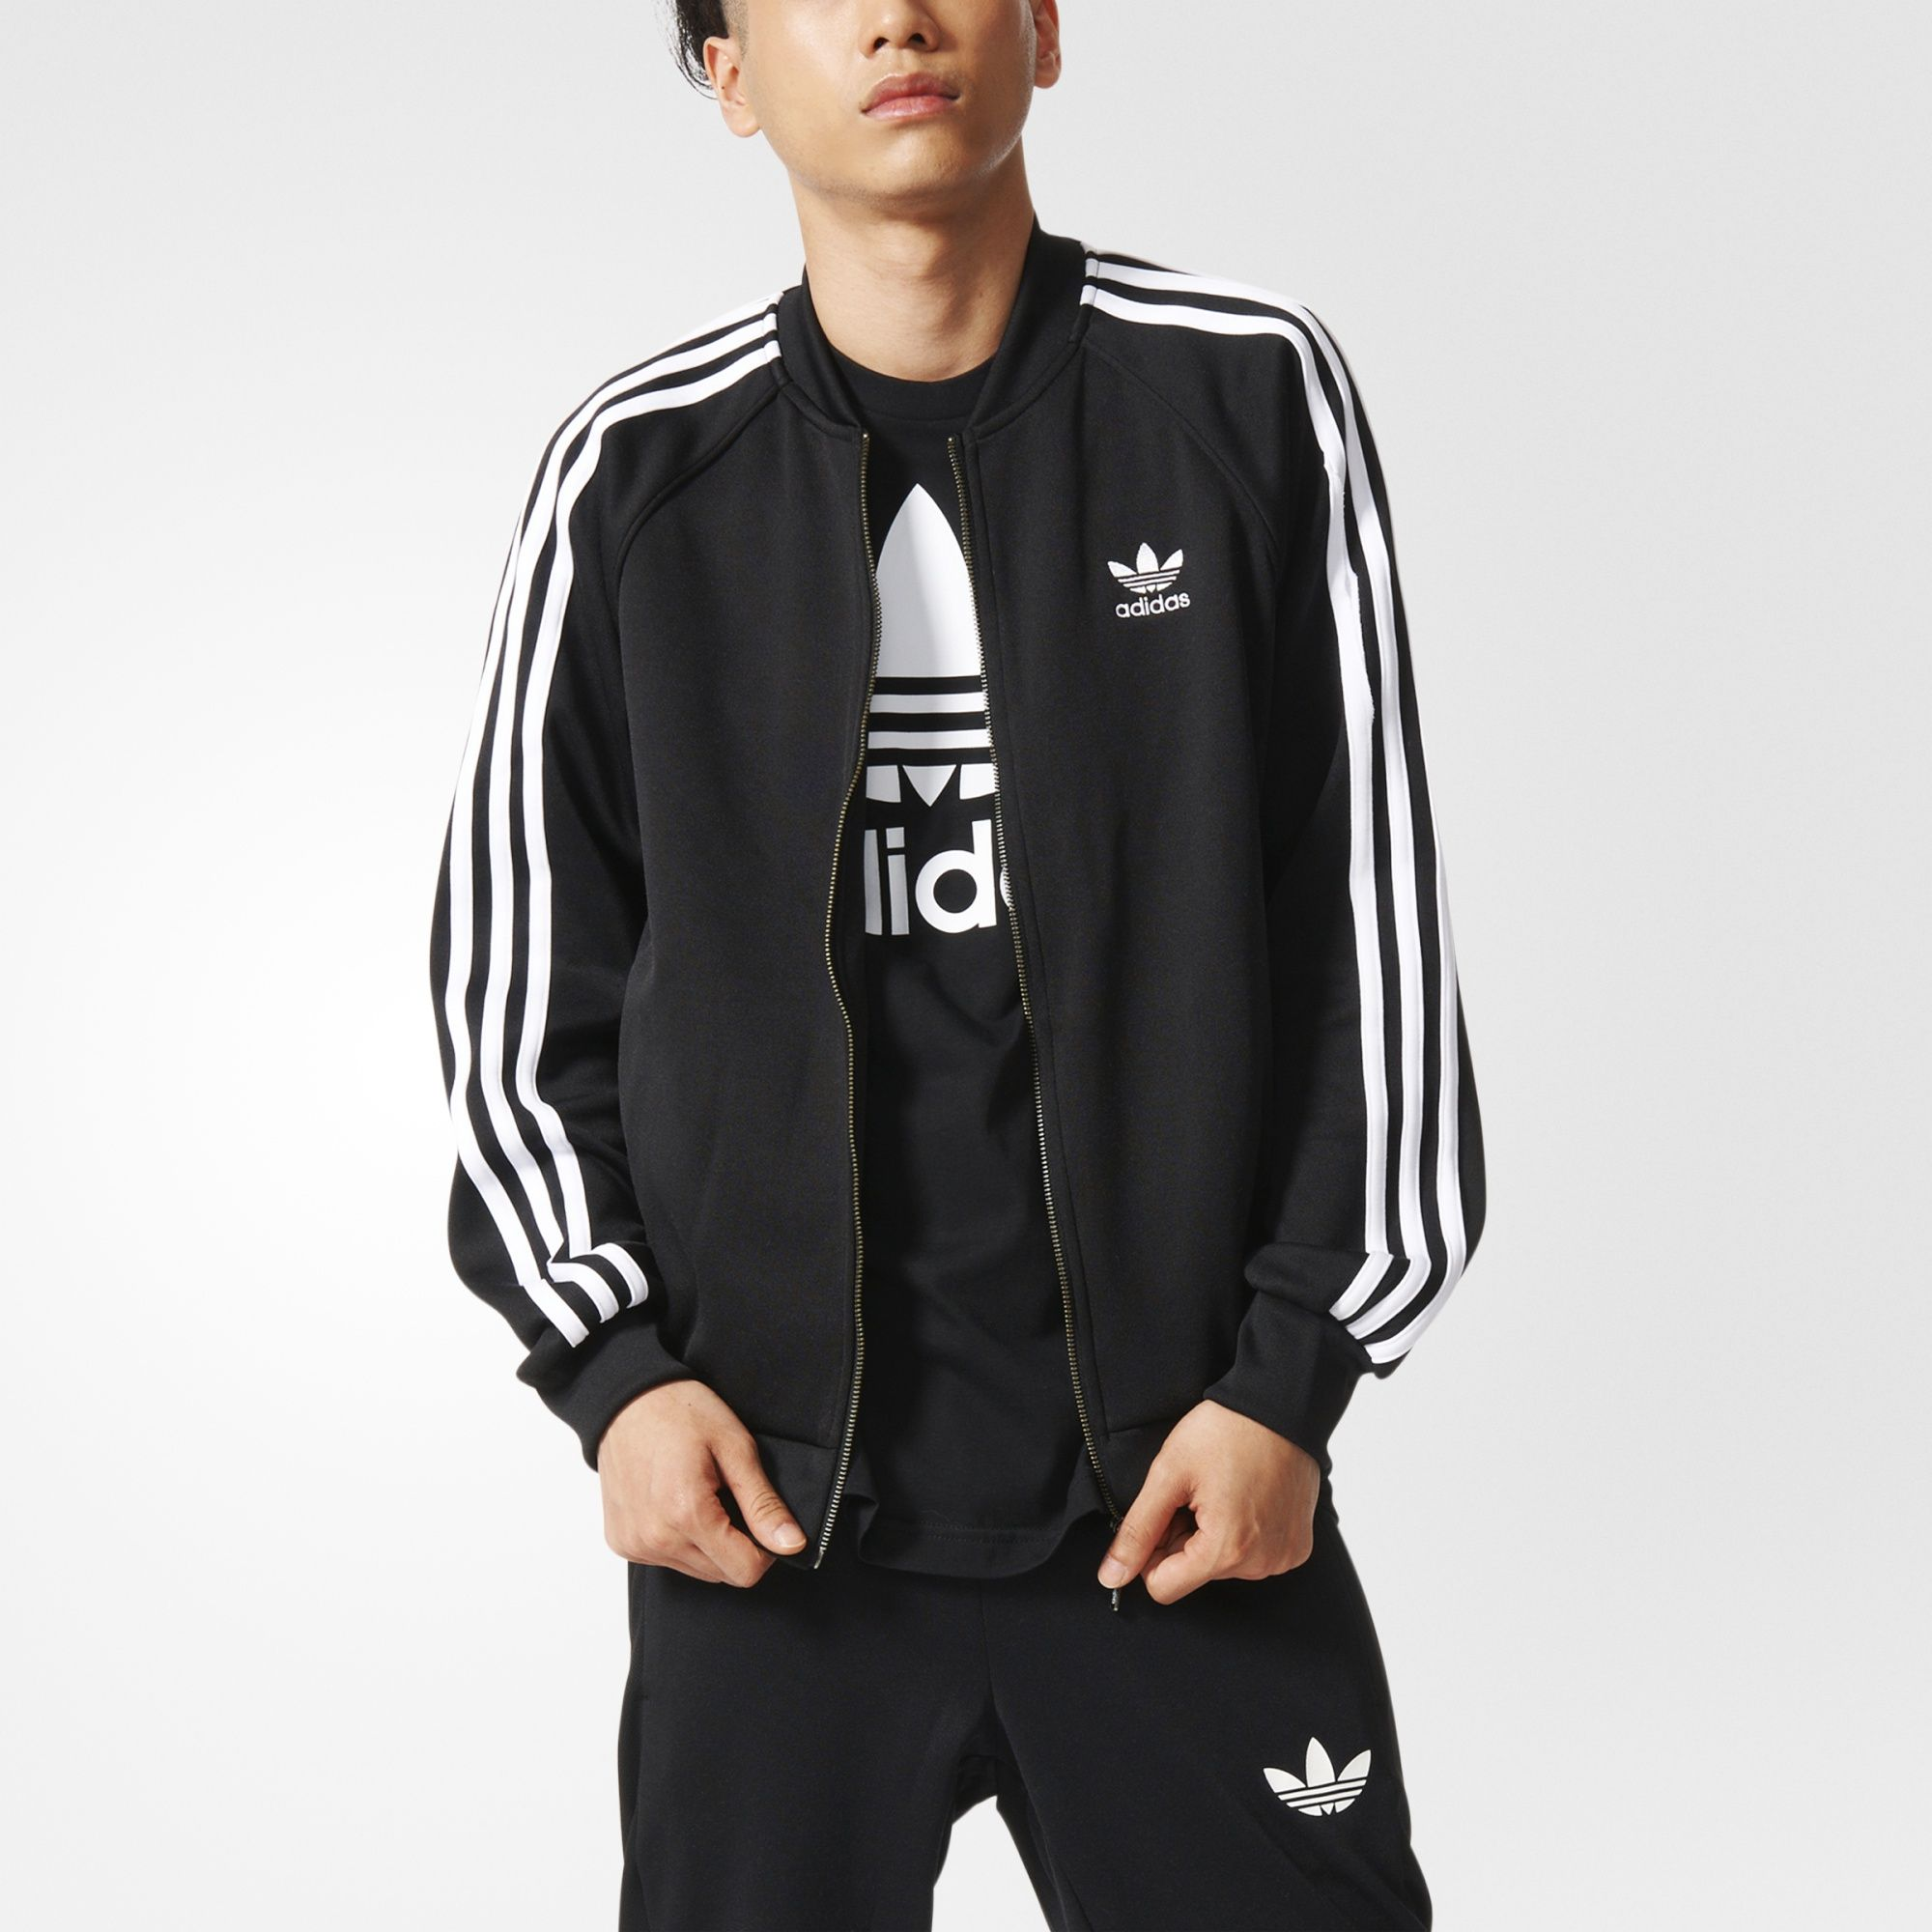 adidas superstar chaqueta